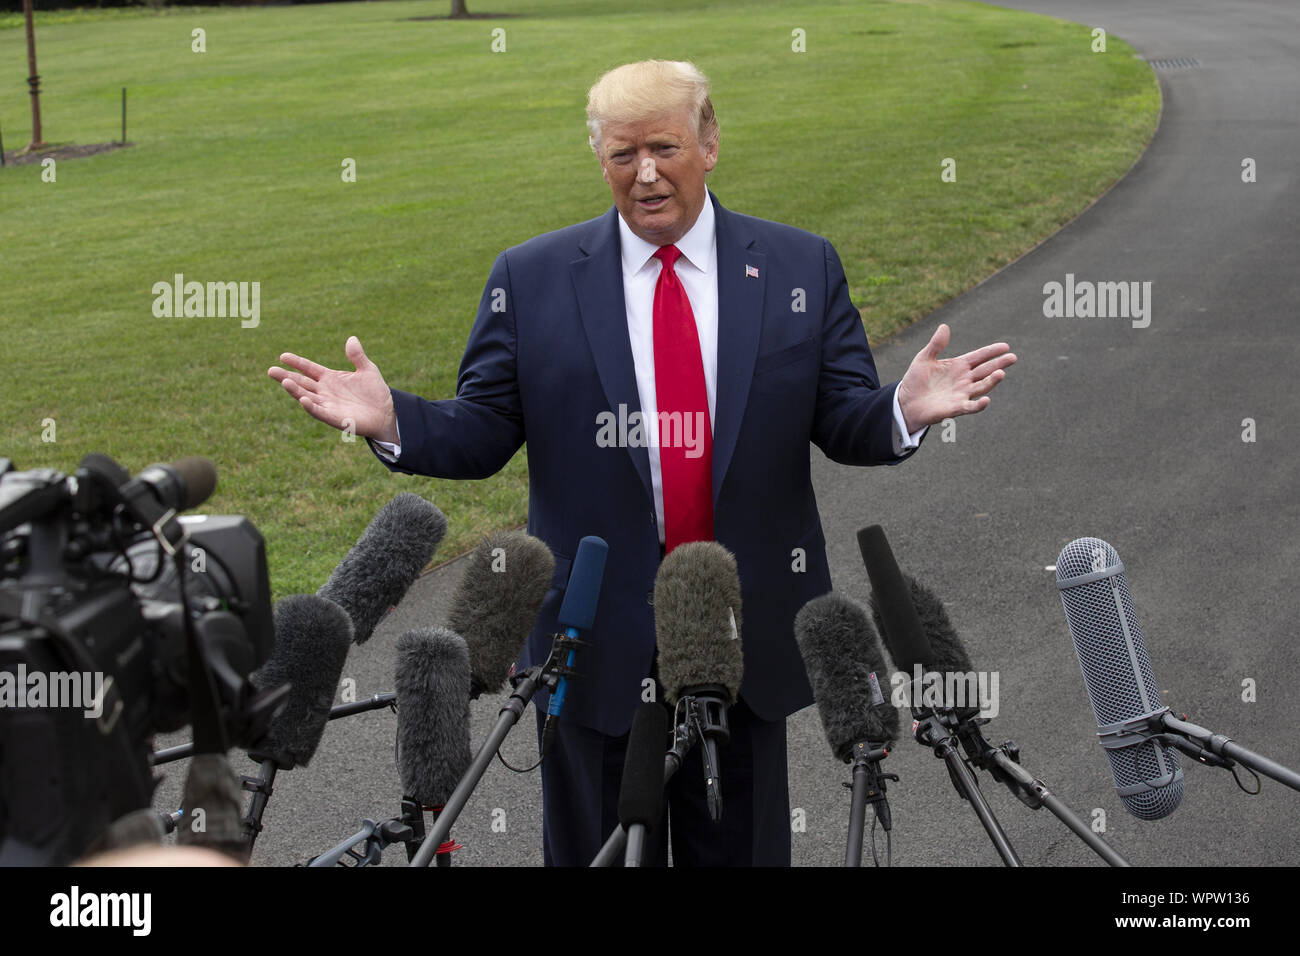 Washington, District of Columbia, USA. 9th Sep, 2019. United States President DONALD J. TRUMPspeaks to the press as he departs the White House in Washington, DC, U.S. for a rally in North Carolina. Trump announced peace talks with the Taliban 'are dead.' Credit: Stefani Reynolds/CNP/ZUMA Wire/Alamy Live News Stock Photo